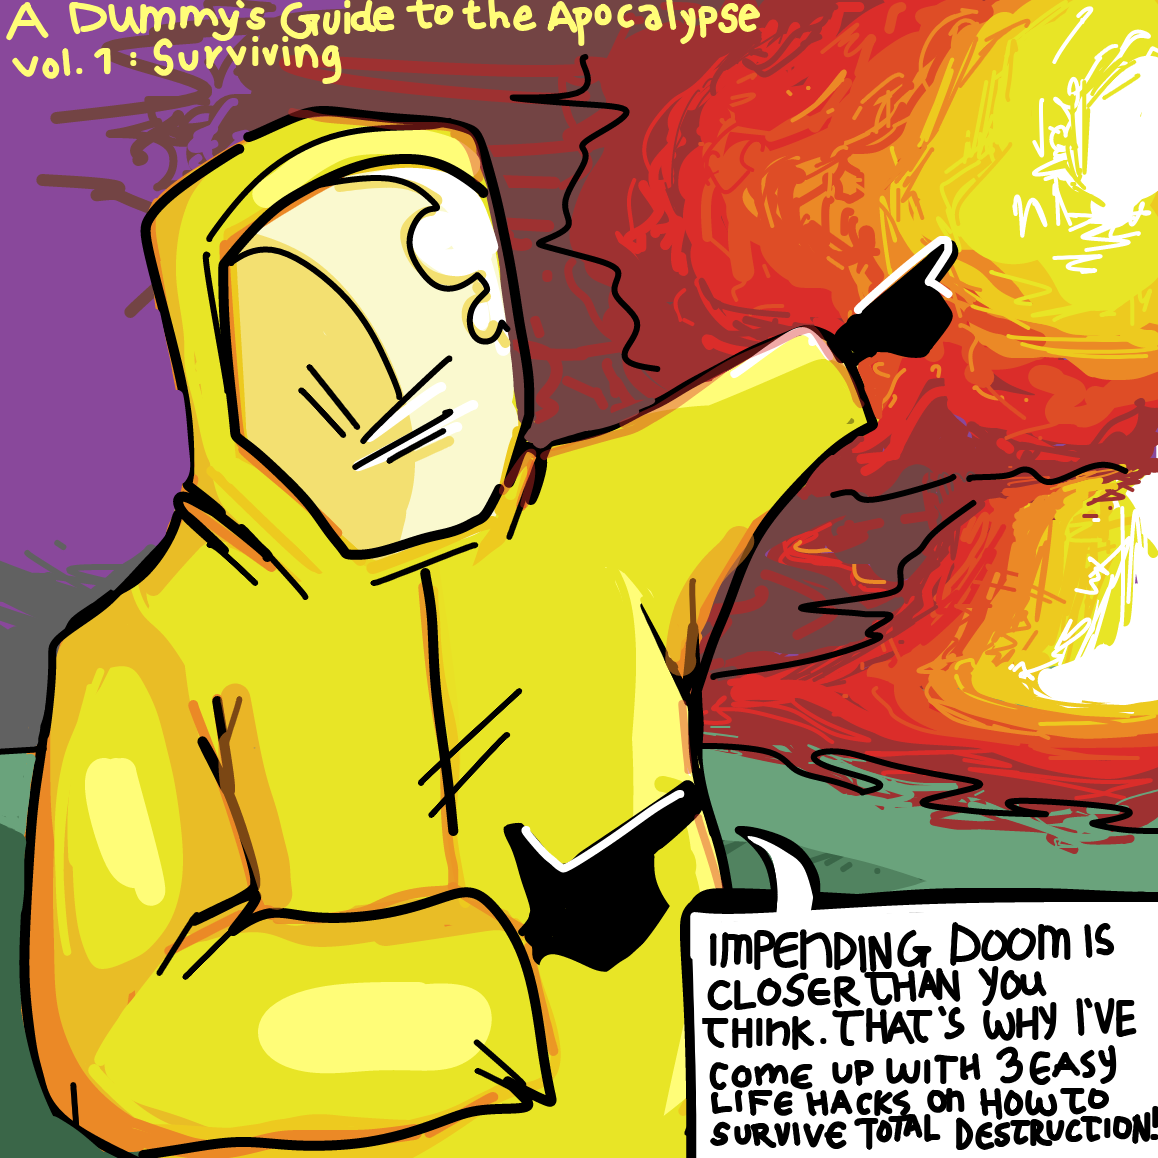 Drawing in 3 easy tips to surviving a nuclear holocaust by The Burned Man